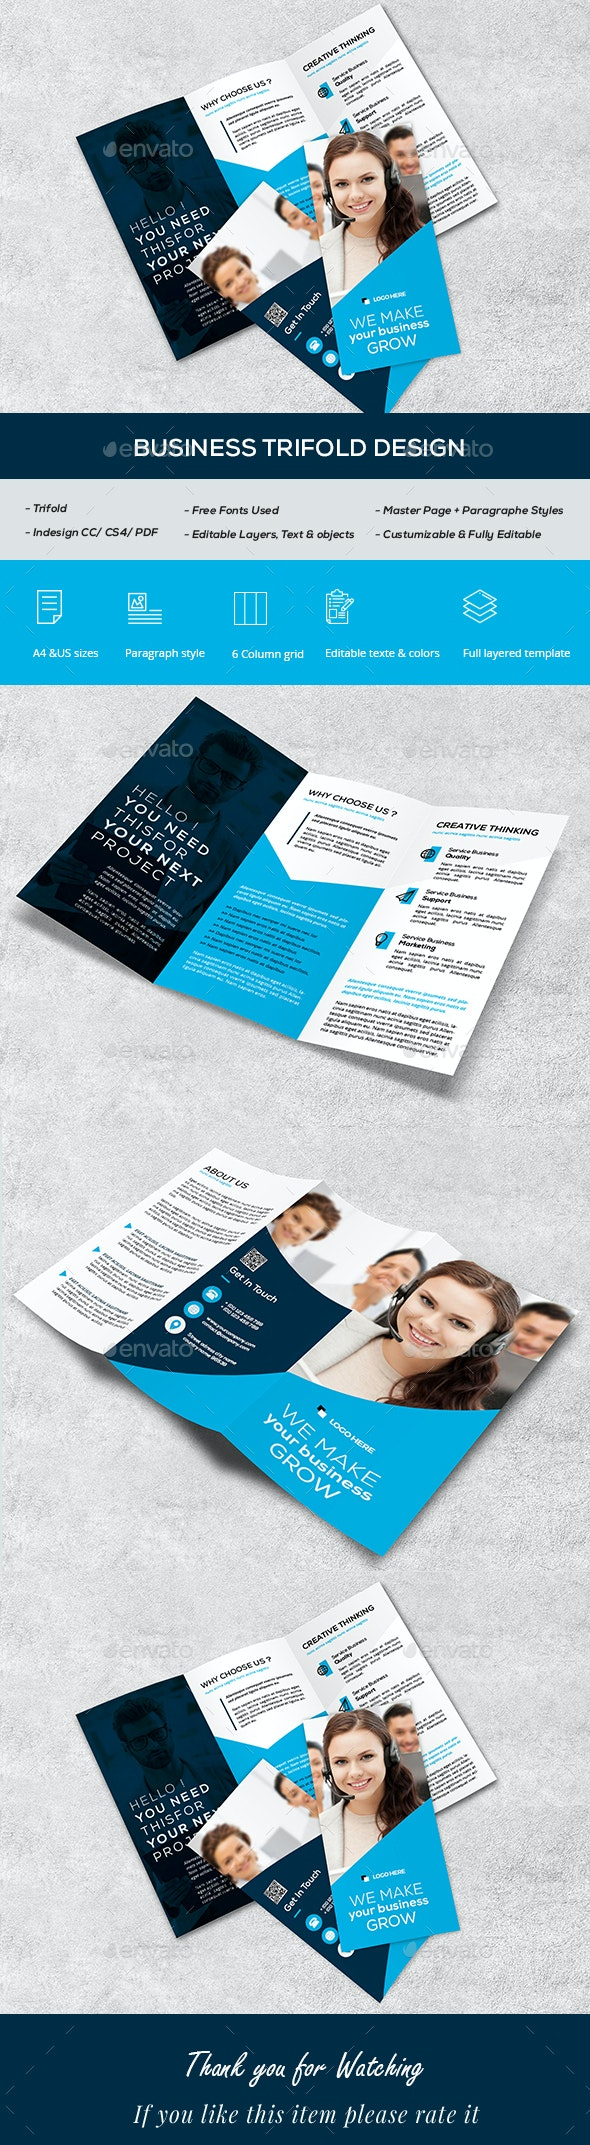 Business Trifold Brcohure - Brochures Print Templates